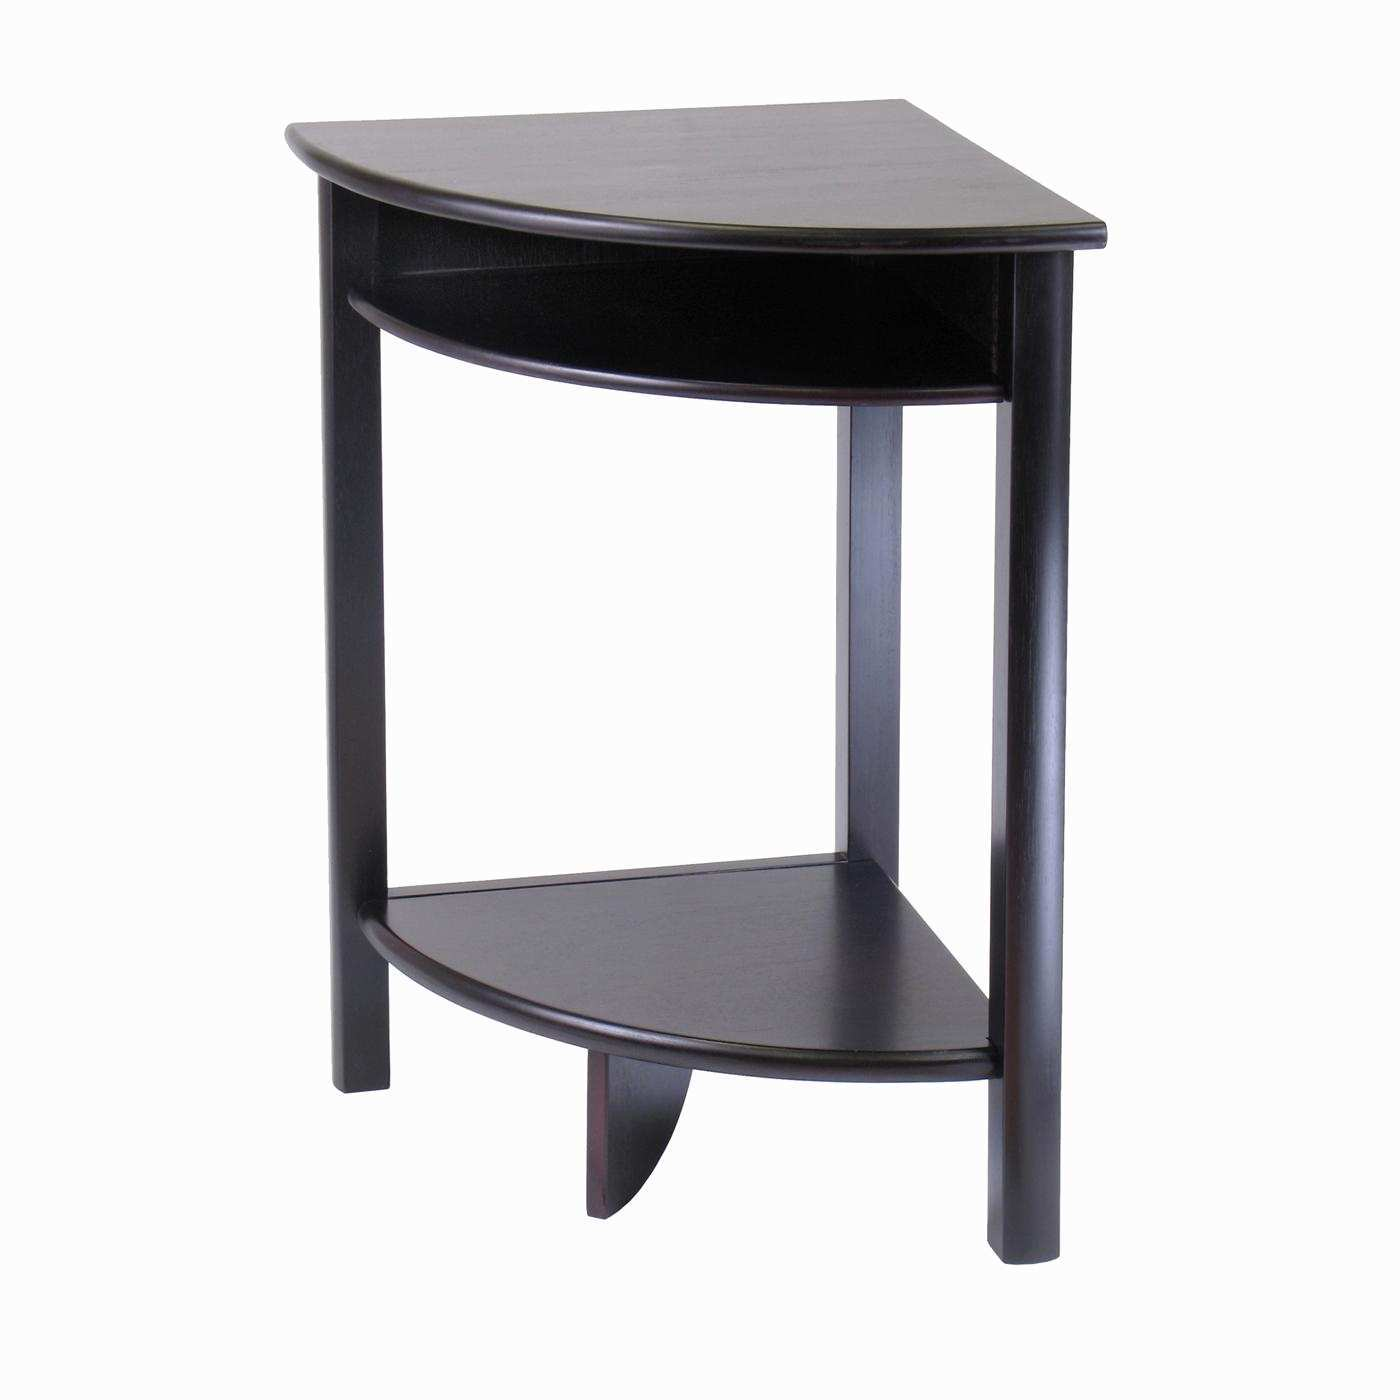 tall corner accent table modern foyer design pattern best furniture narrow console for hallway dining light fixture dragonfly stained glass lamp marilyn threshold gold side hadley